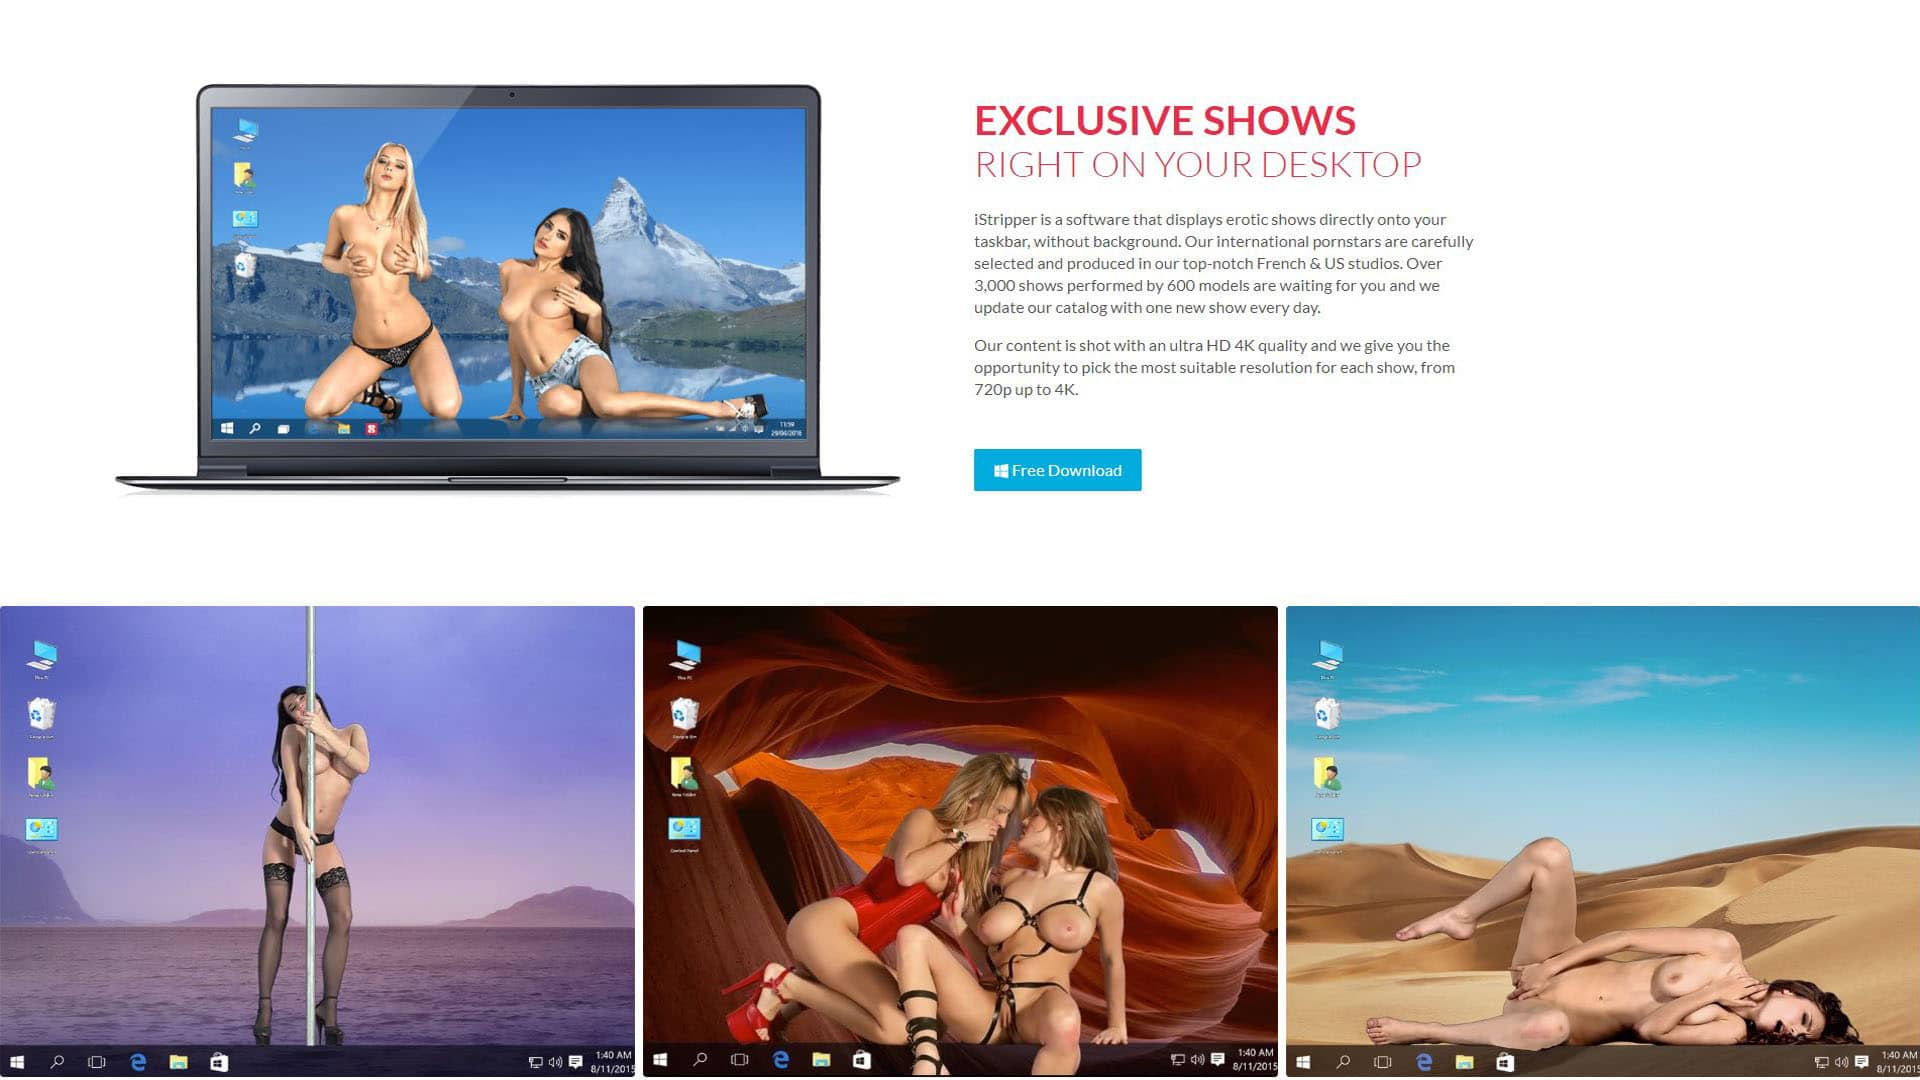 IStripper Exclusive Show Right On Your Desktop